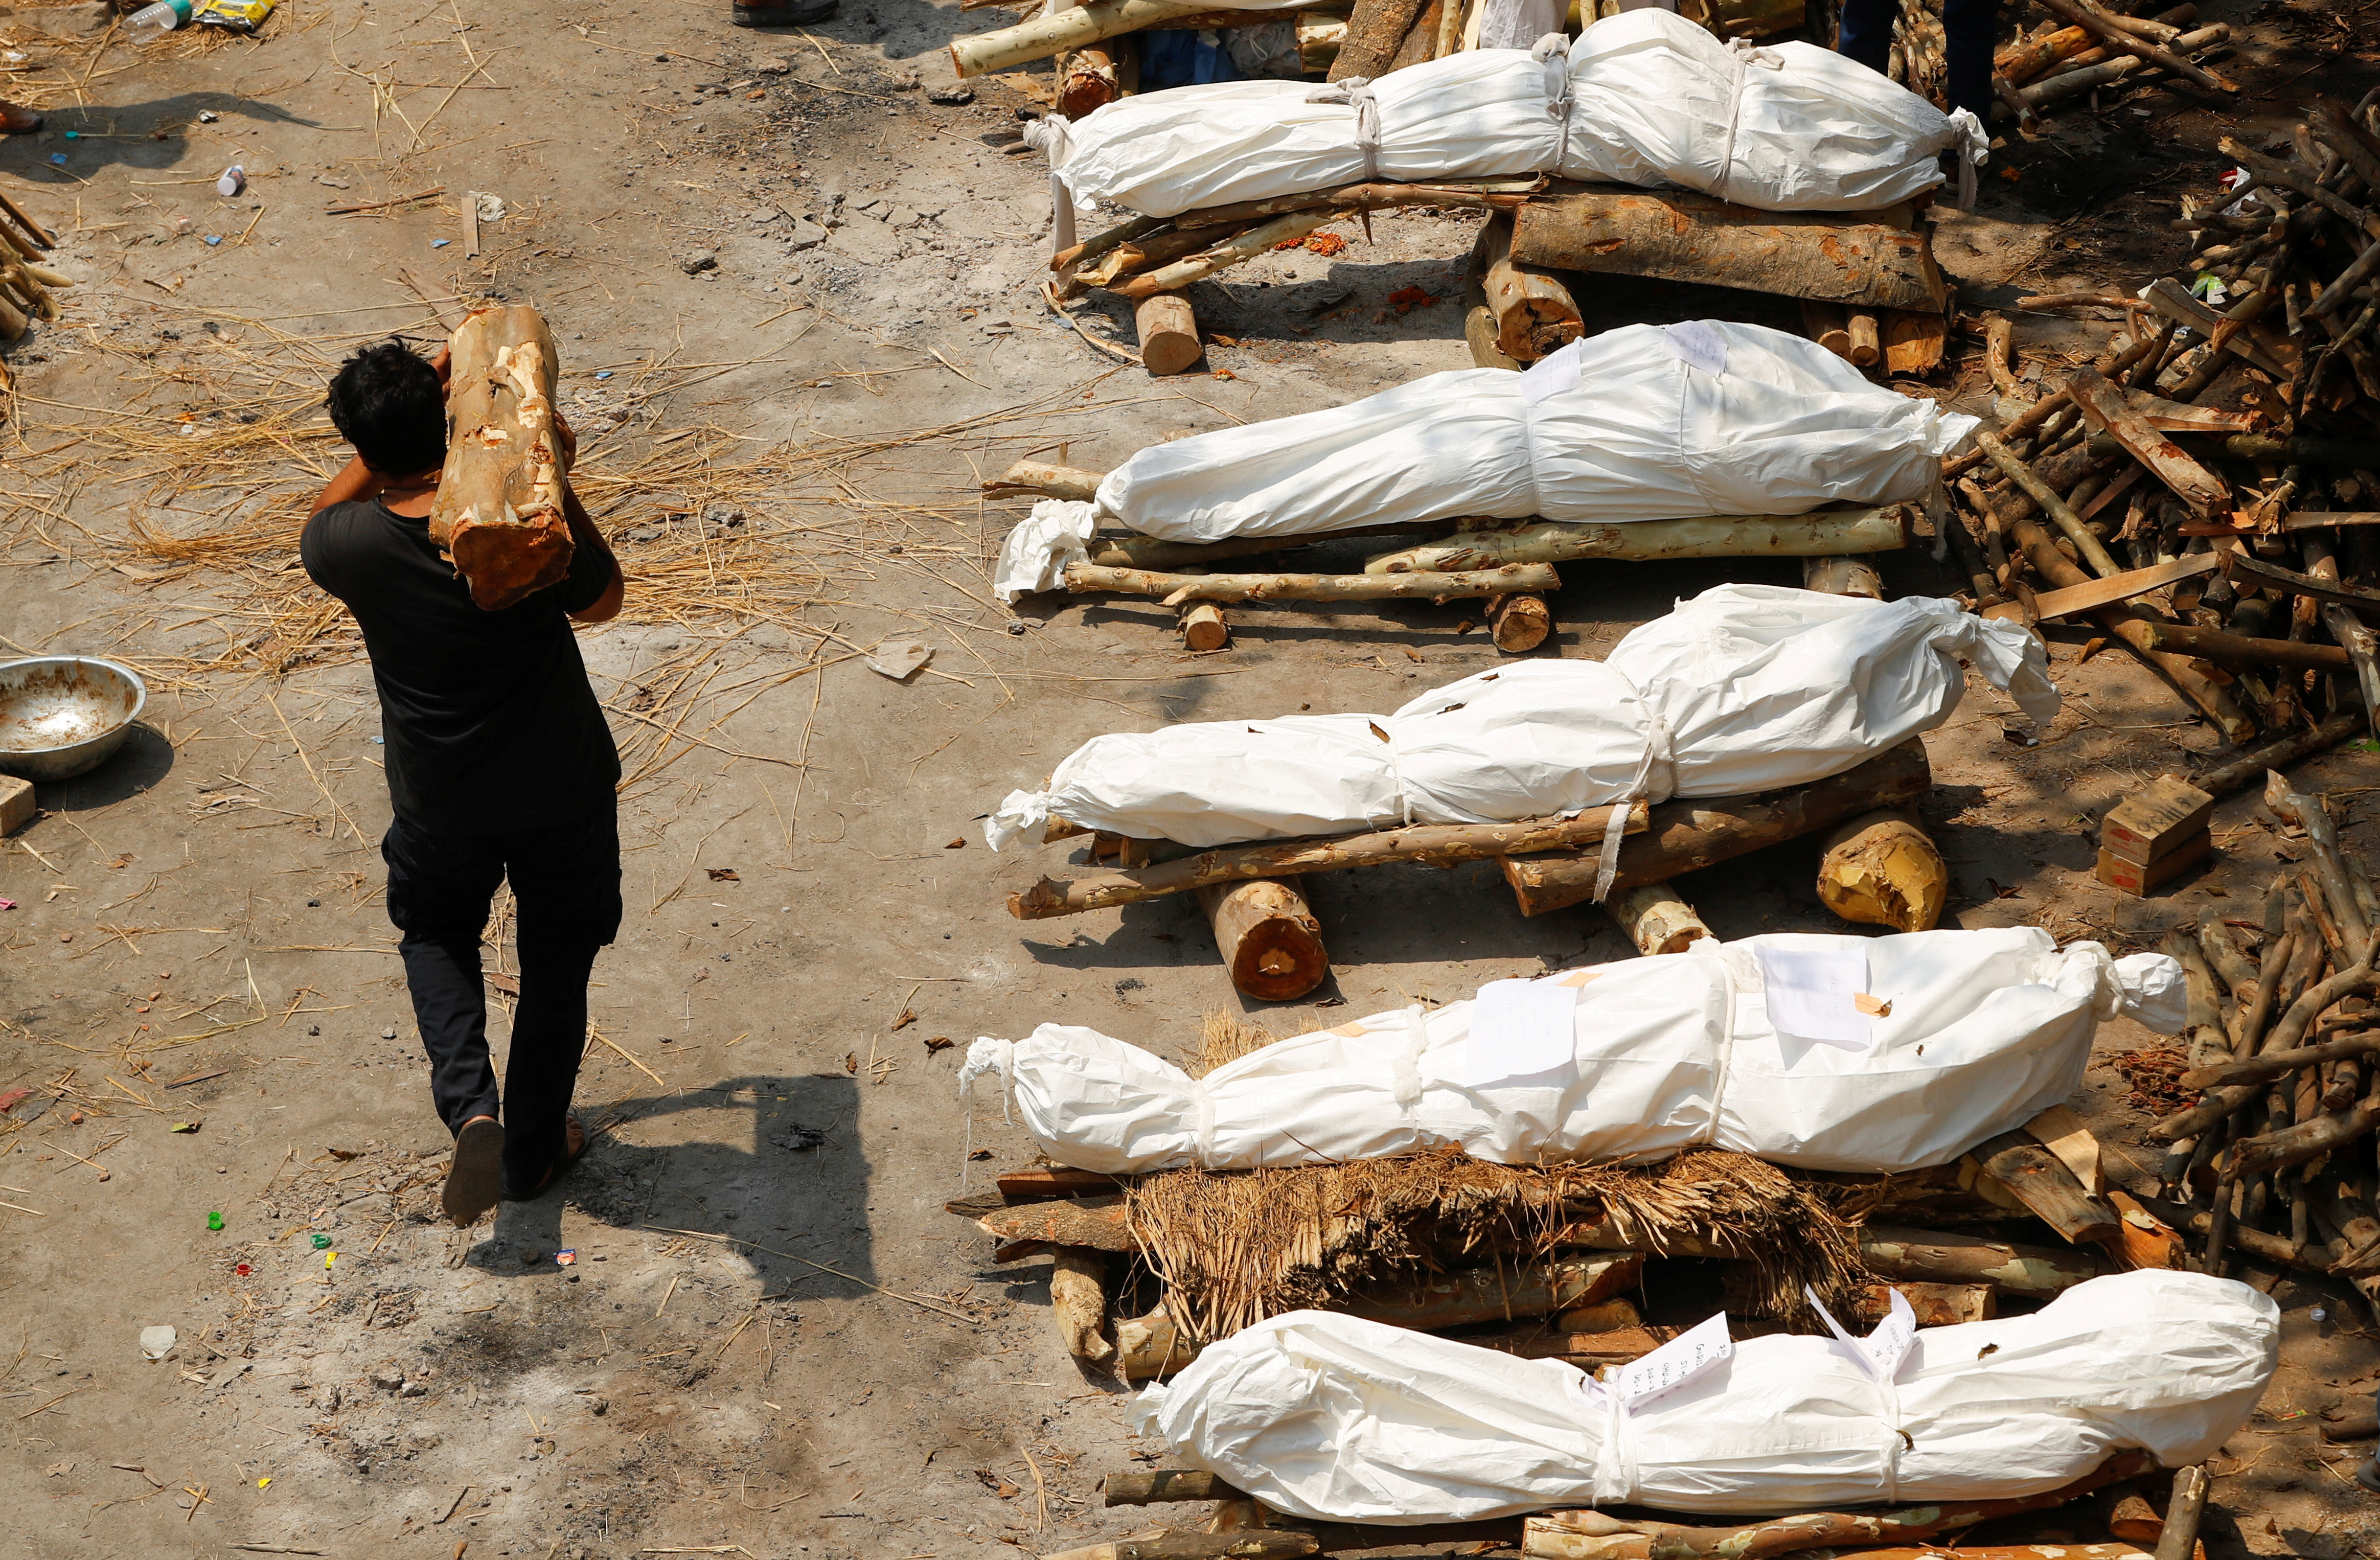 A man carrying wood walks past the funeral pyres of those who died from the coronavirus disease (COVID-19), during a mass cremation, at a crematorium in New Delhi, India April 26, 2021. REUTERS/Adnan Abidi